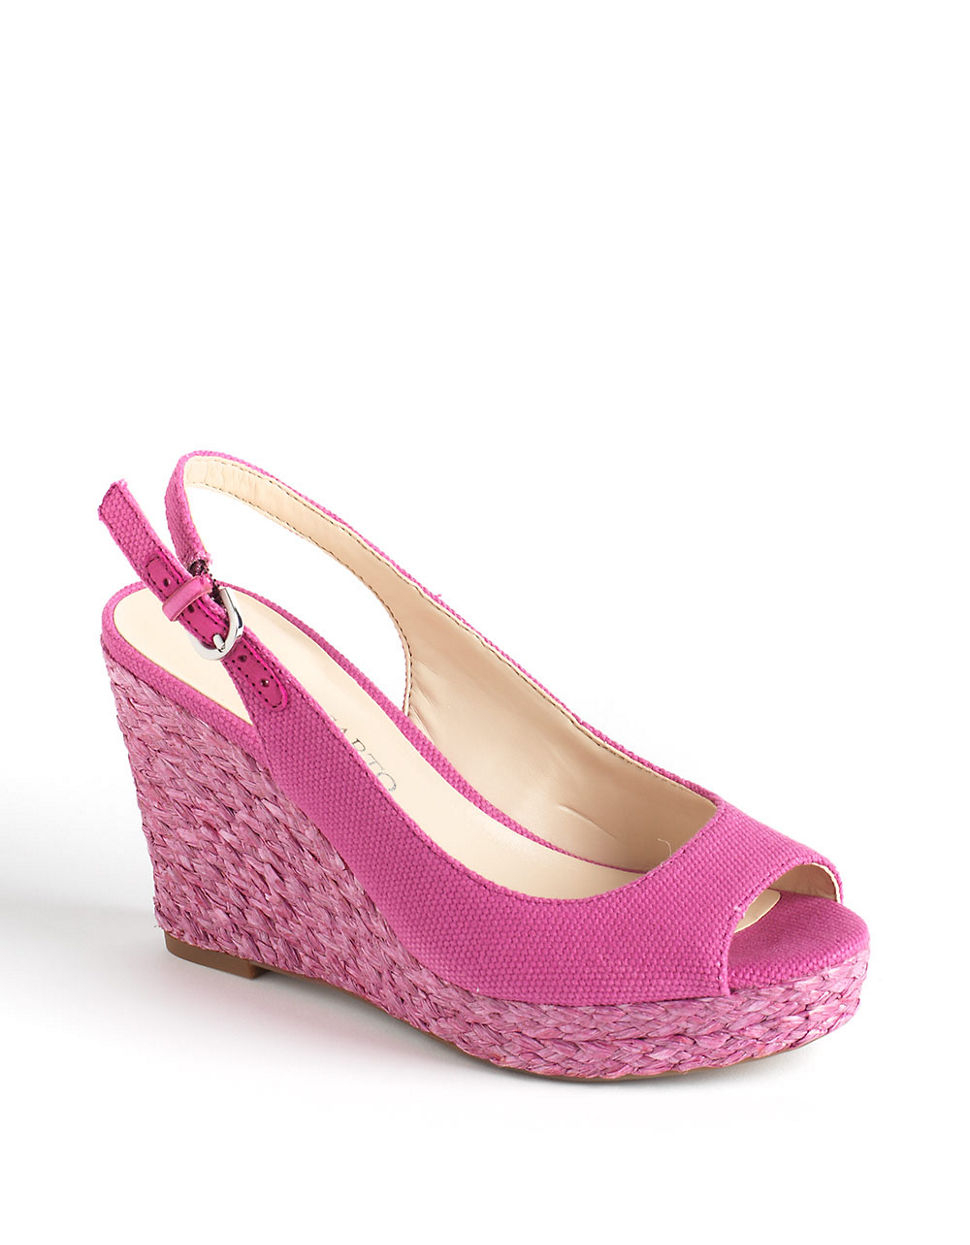 franco sarto rory canvas slingback wedge sandals in pink